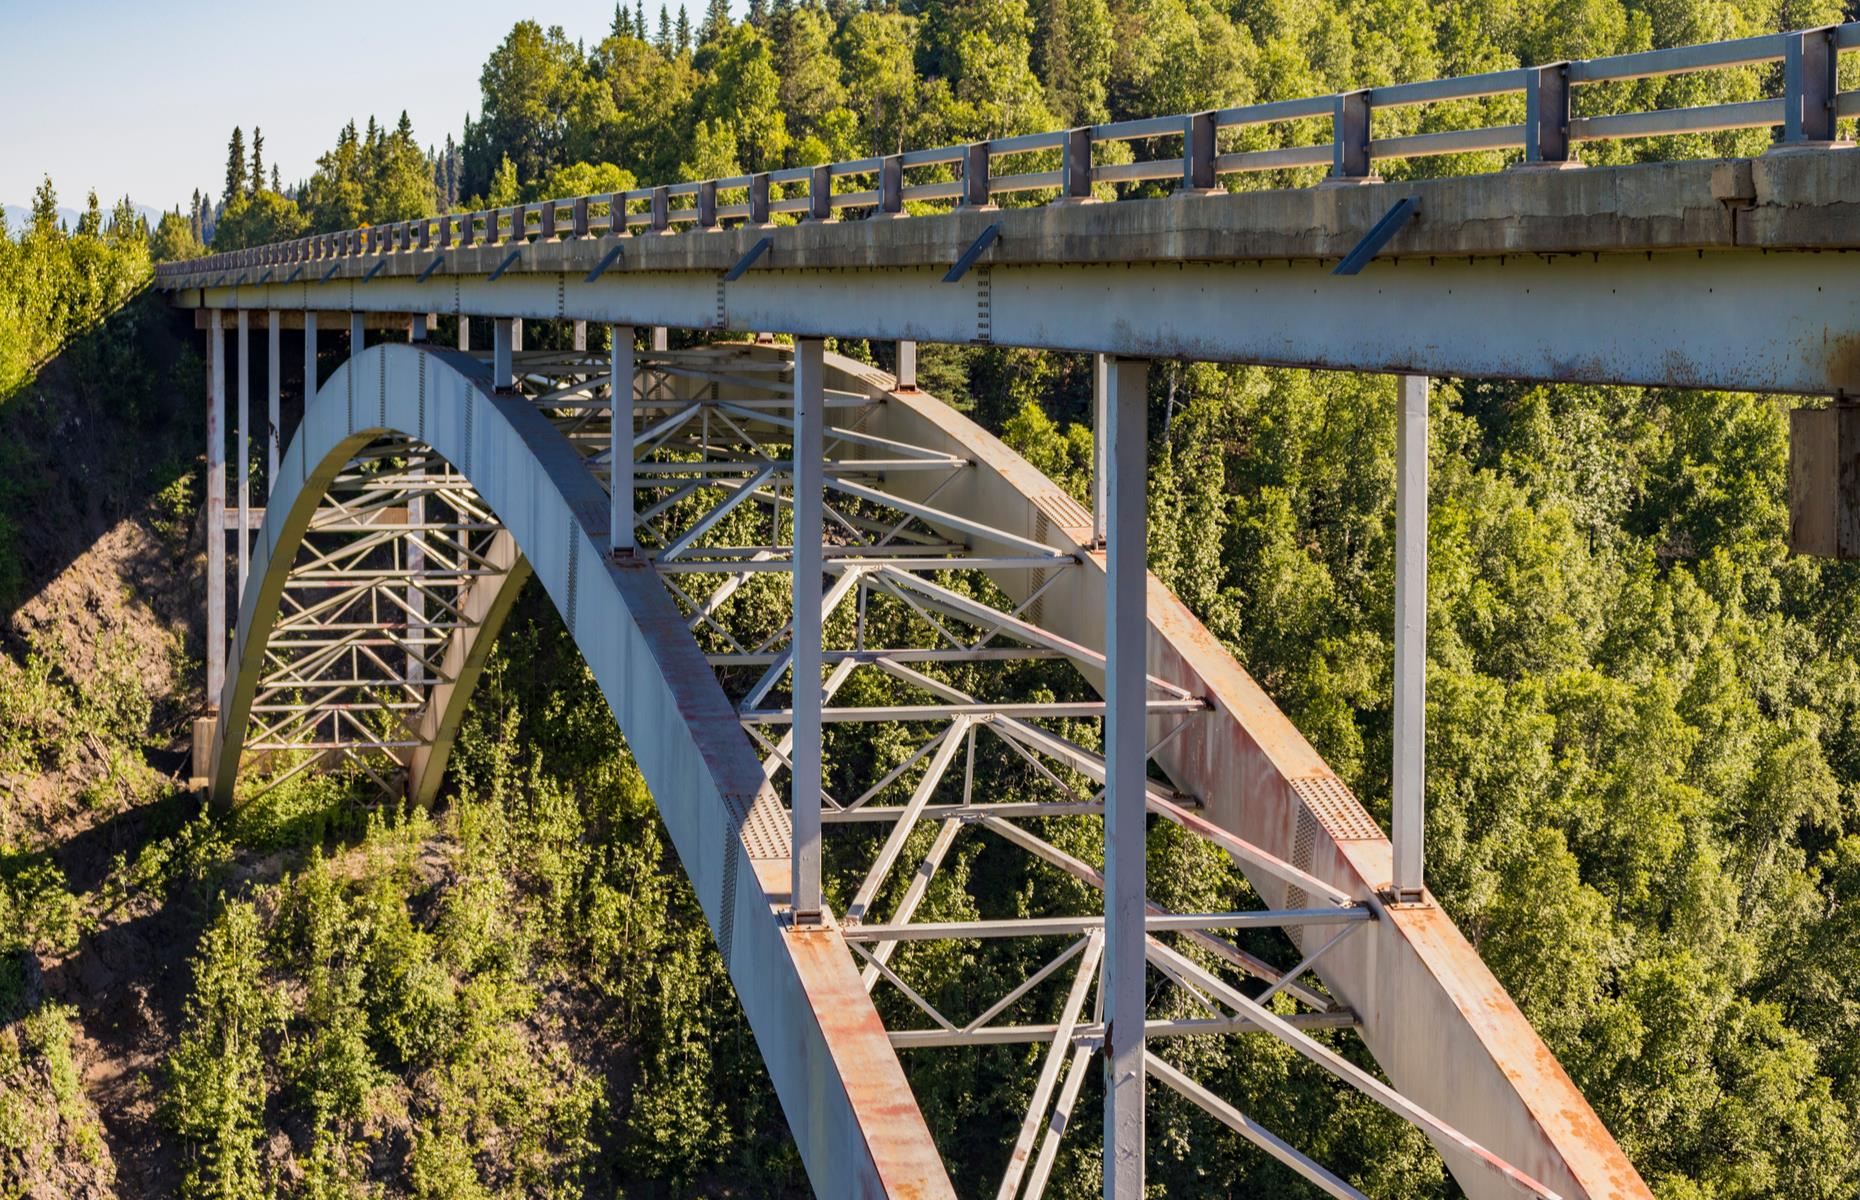 Slide 3 of 52: The hair-raising Hurricane Gulch Bridge rises some 296 feet (90m) above the Hurricane Creek in southern Alaska and spreads out for a whopping 918 feet (85m), making it the longest and tallest bridge on the Alaska Railroad. When it was erected in 1921, it was considered a true wonder of engineering and remains a head-turning sight today.